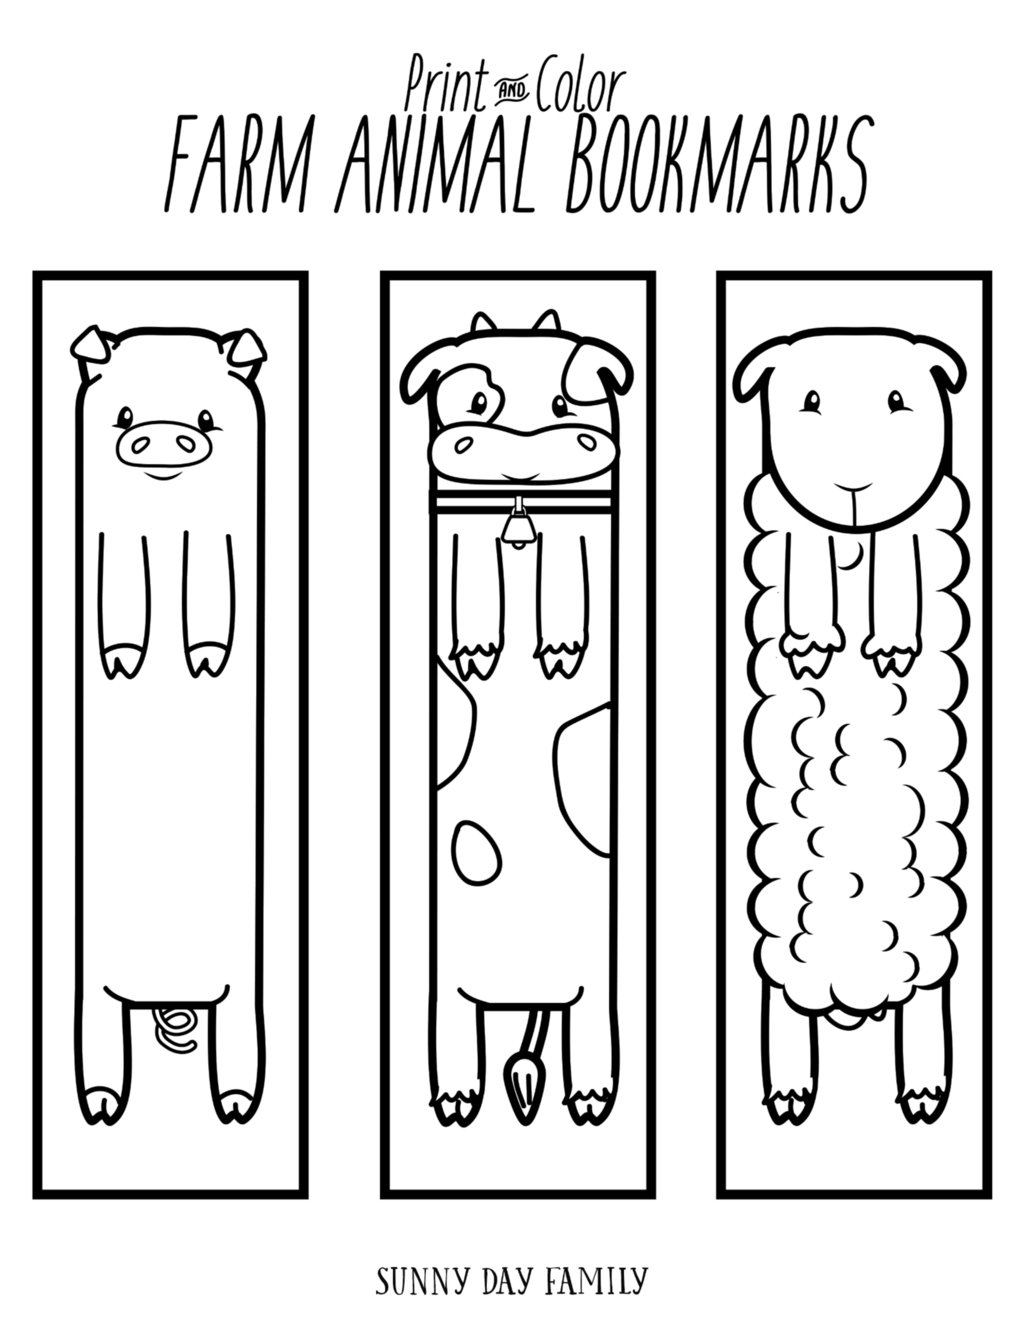 Coloring animal bookmarks